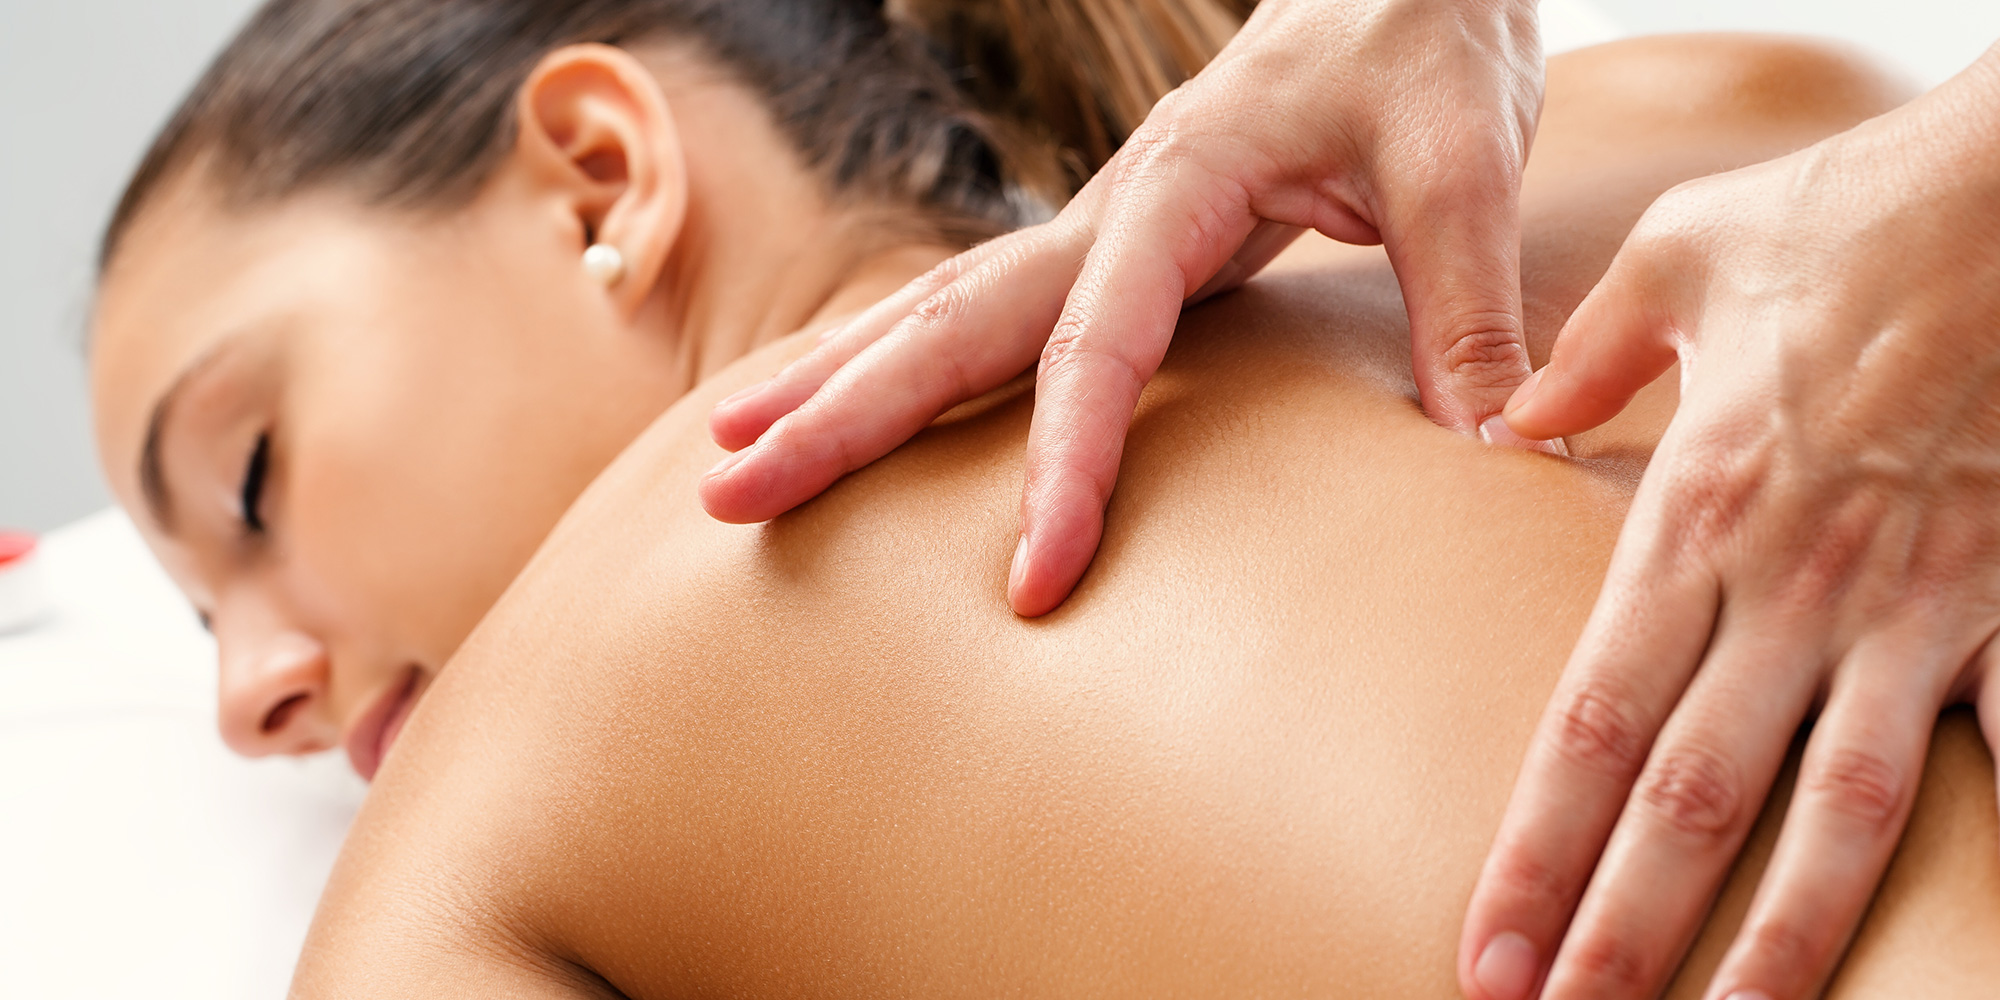 Join Reflexology Courses in London to Jump Start Your Career